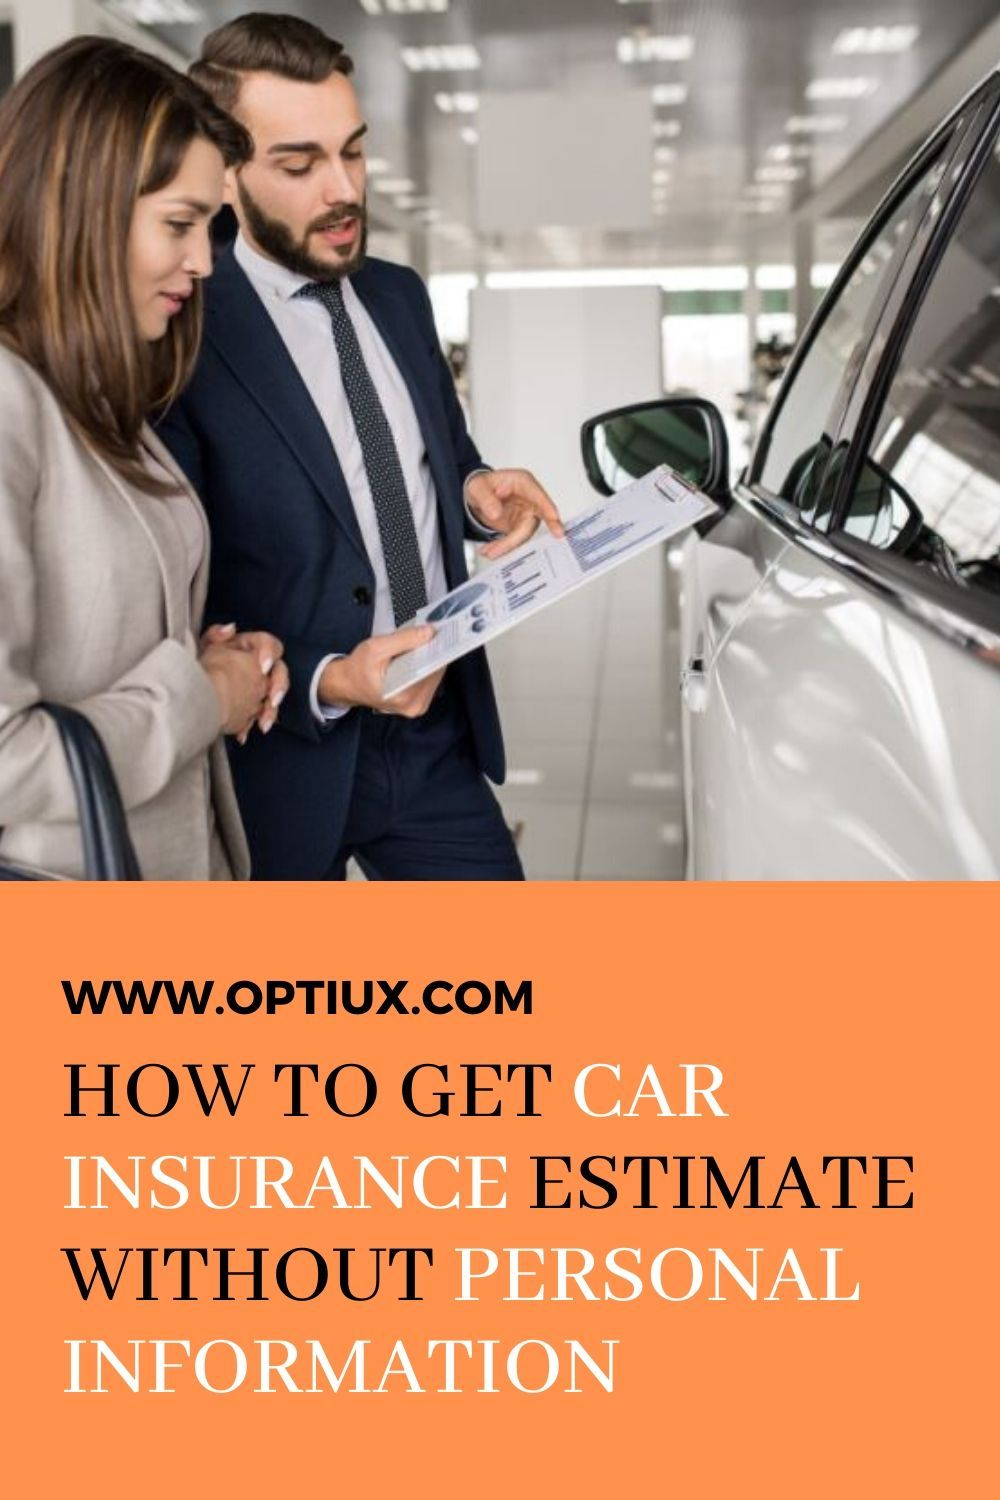 Get Car Insurance Estimate Without Personal Information 2020